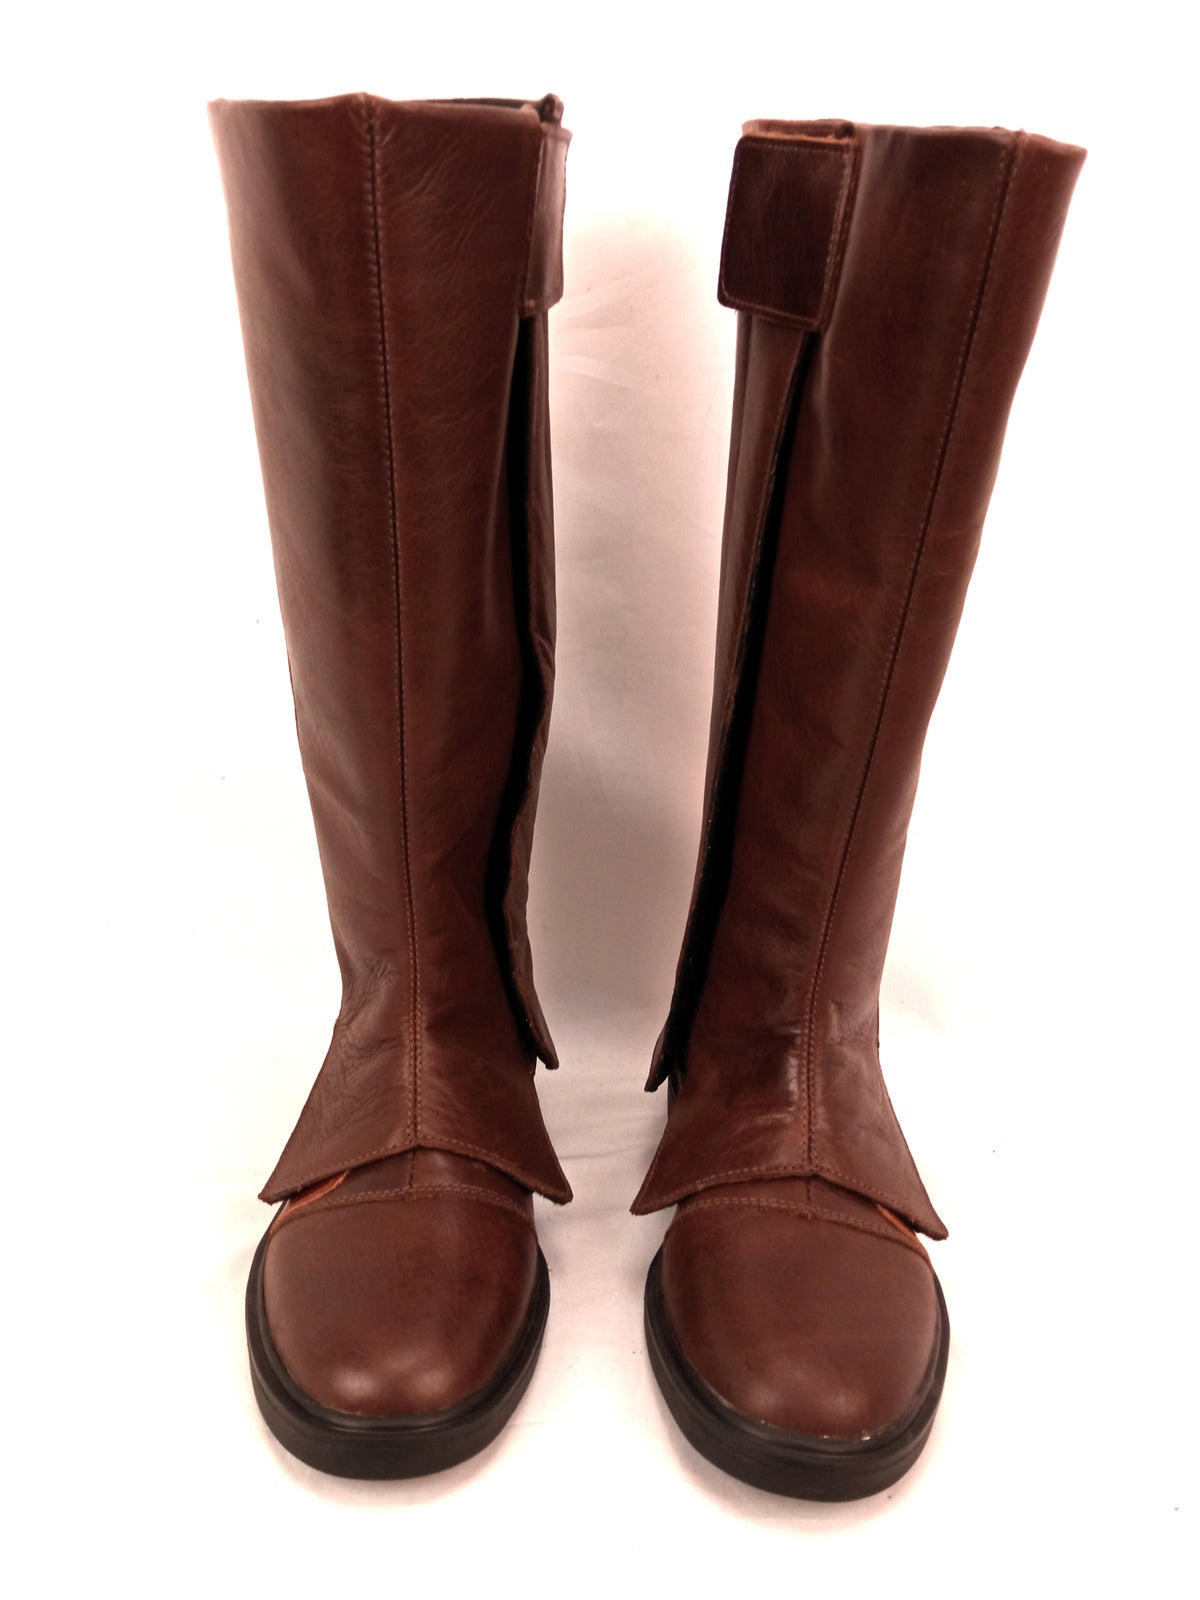 Image of BO KATAN BOOTS (Long Boots and Spats)